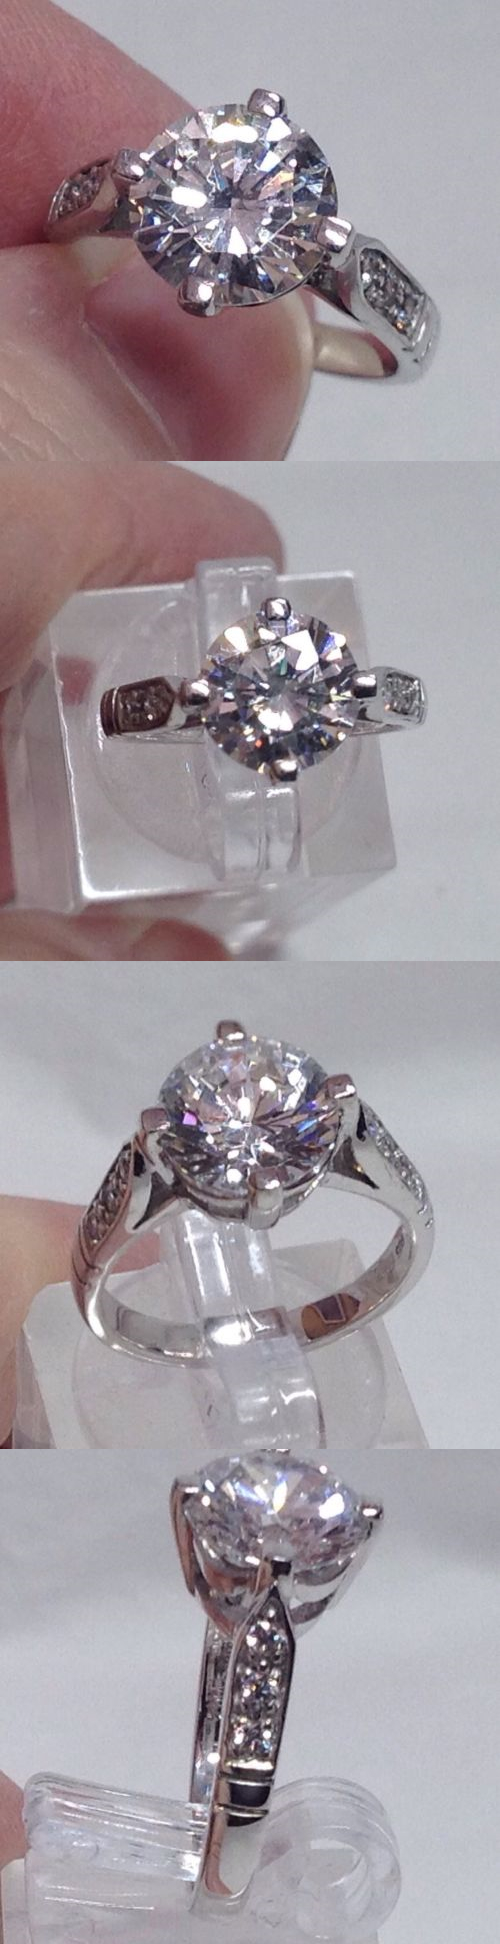 Other Fine Rings 177030: Qvc Sterling Silver 3 Carat Diamonique Ring With Accents Size 6 -> BUY IT NOW ONLY: $42.75 on eBay!